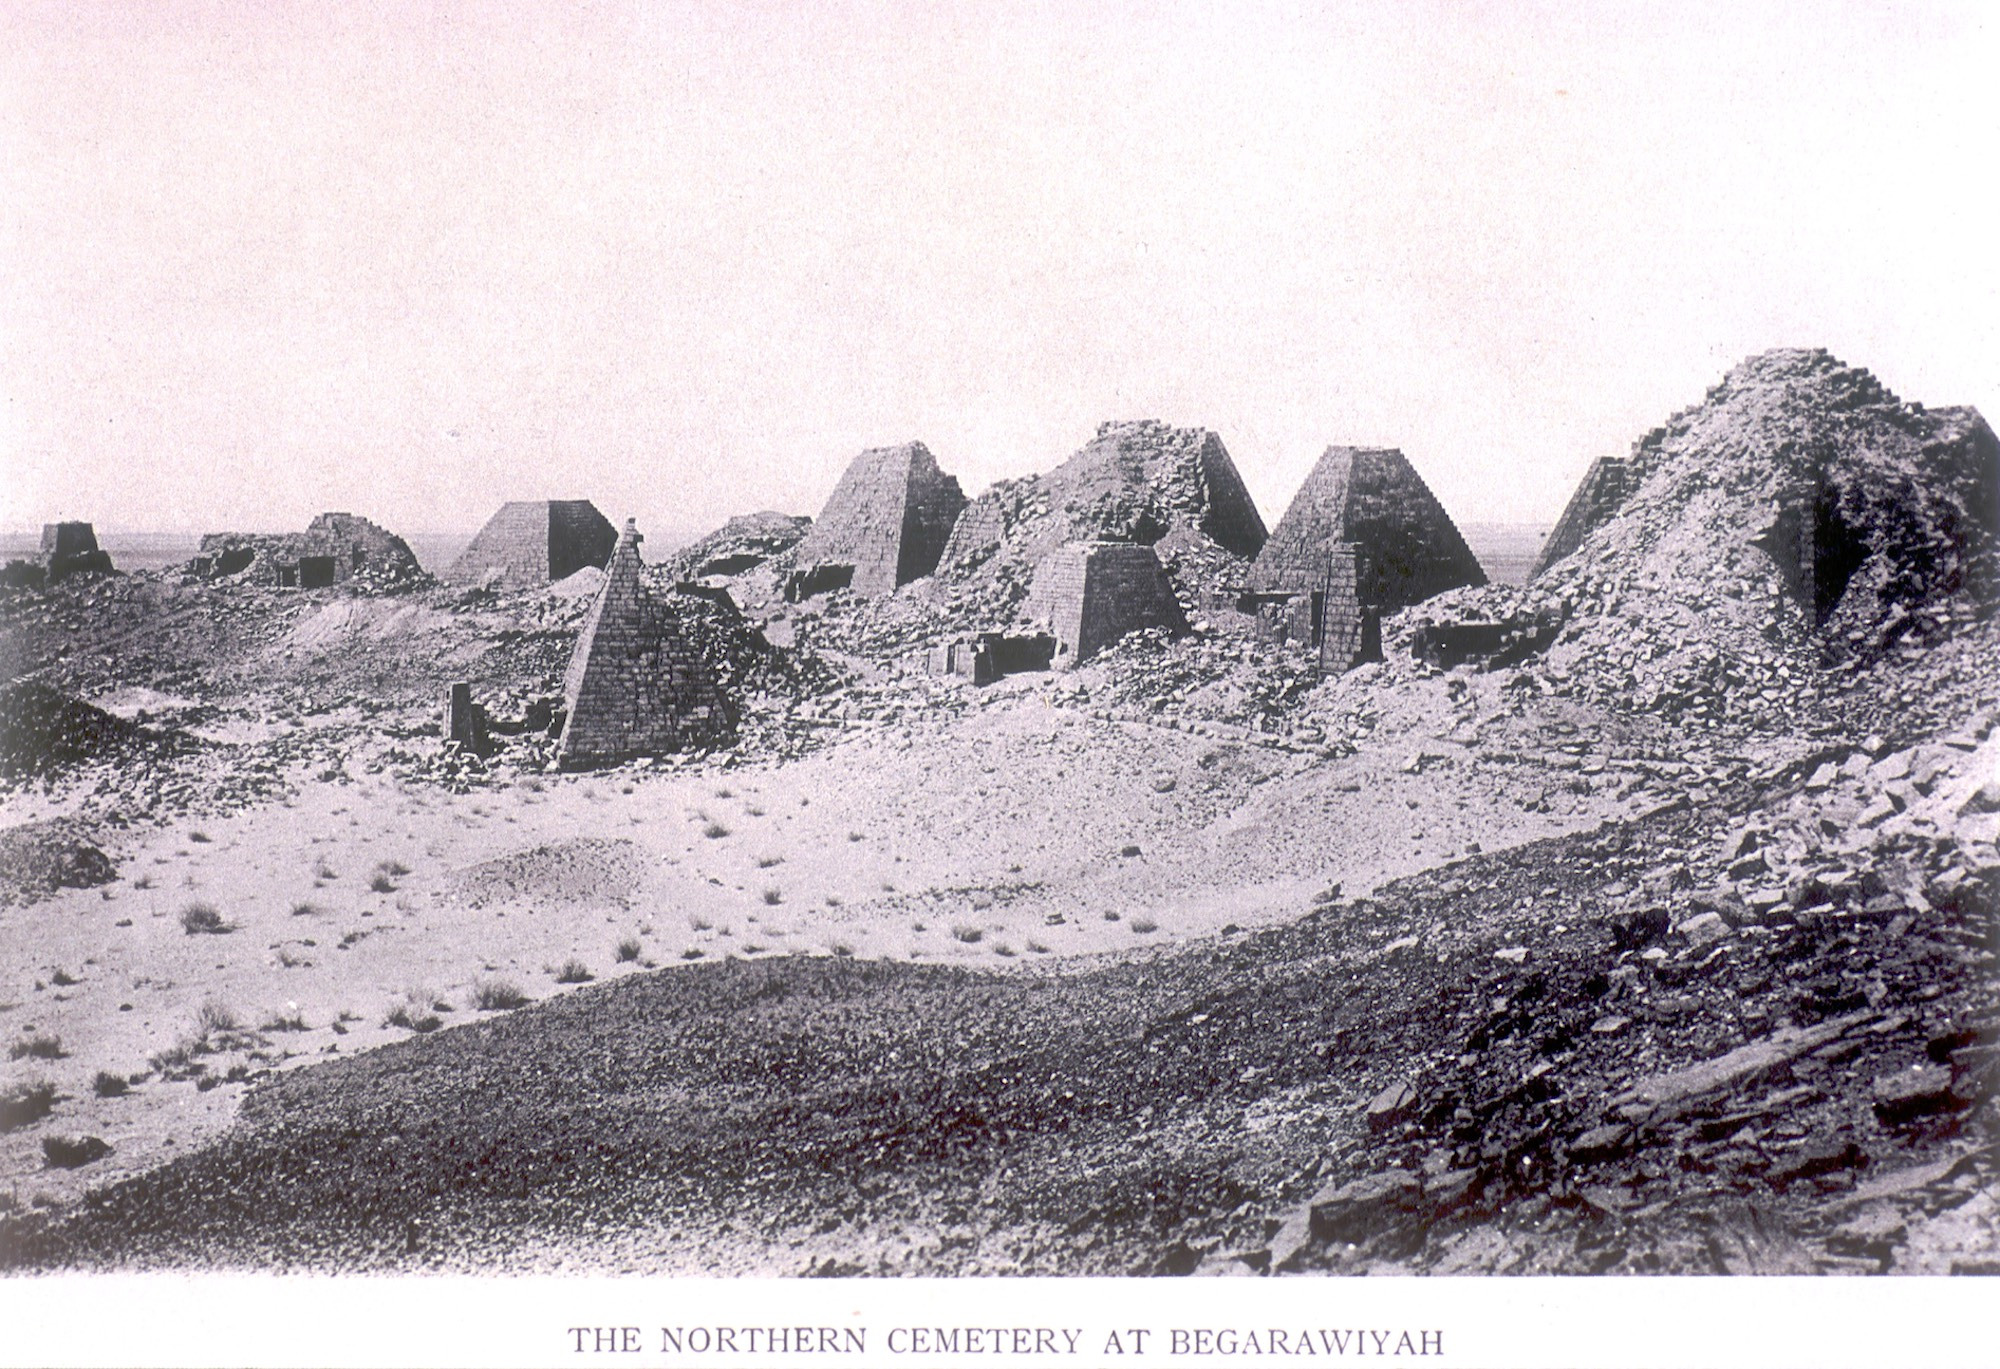 Pyramids from Begrawiyah Northern Cemetery, Meroe, Sudan, dating between 270 B.C and A.D. 350.